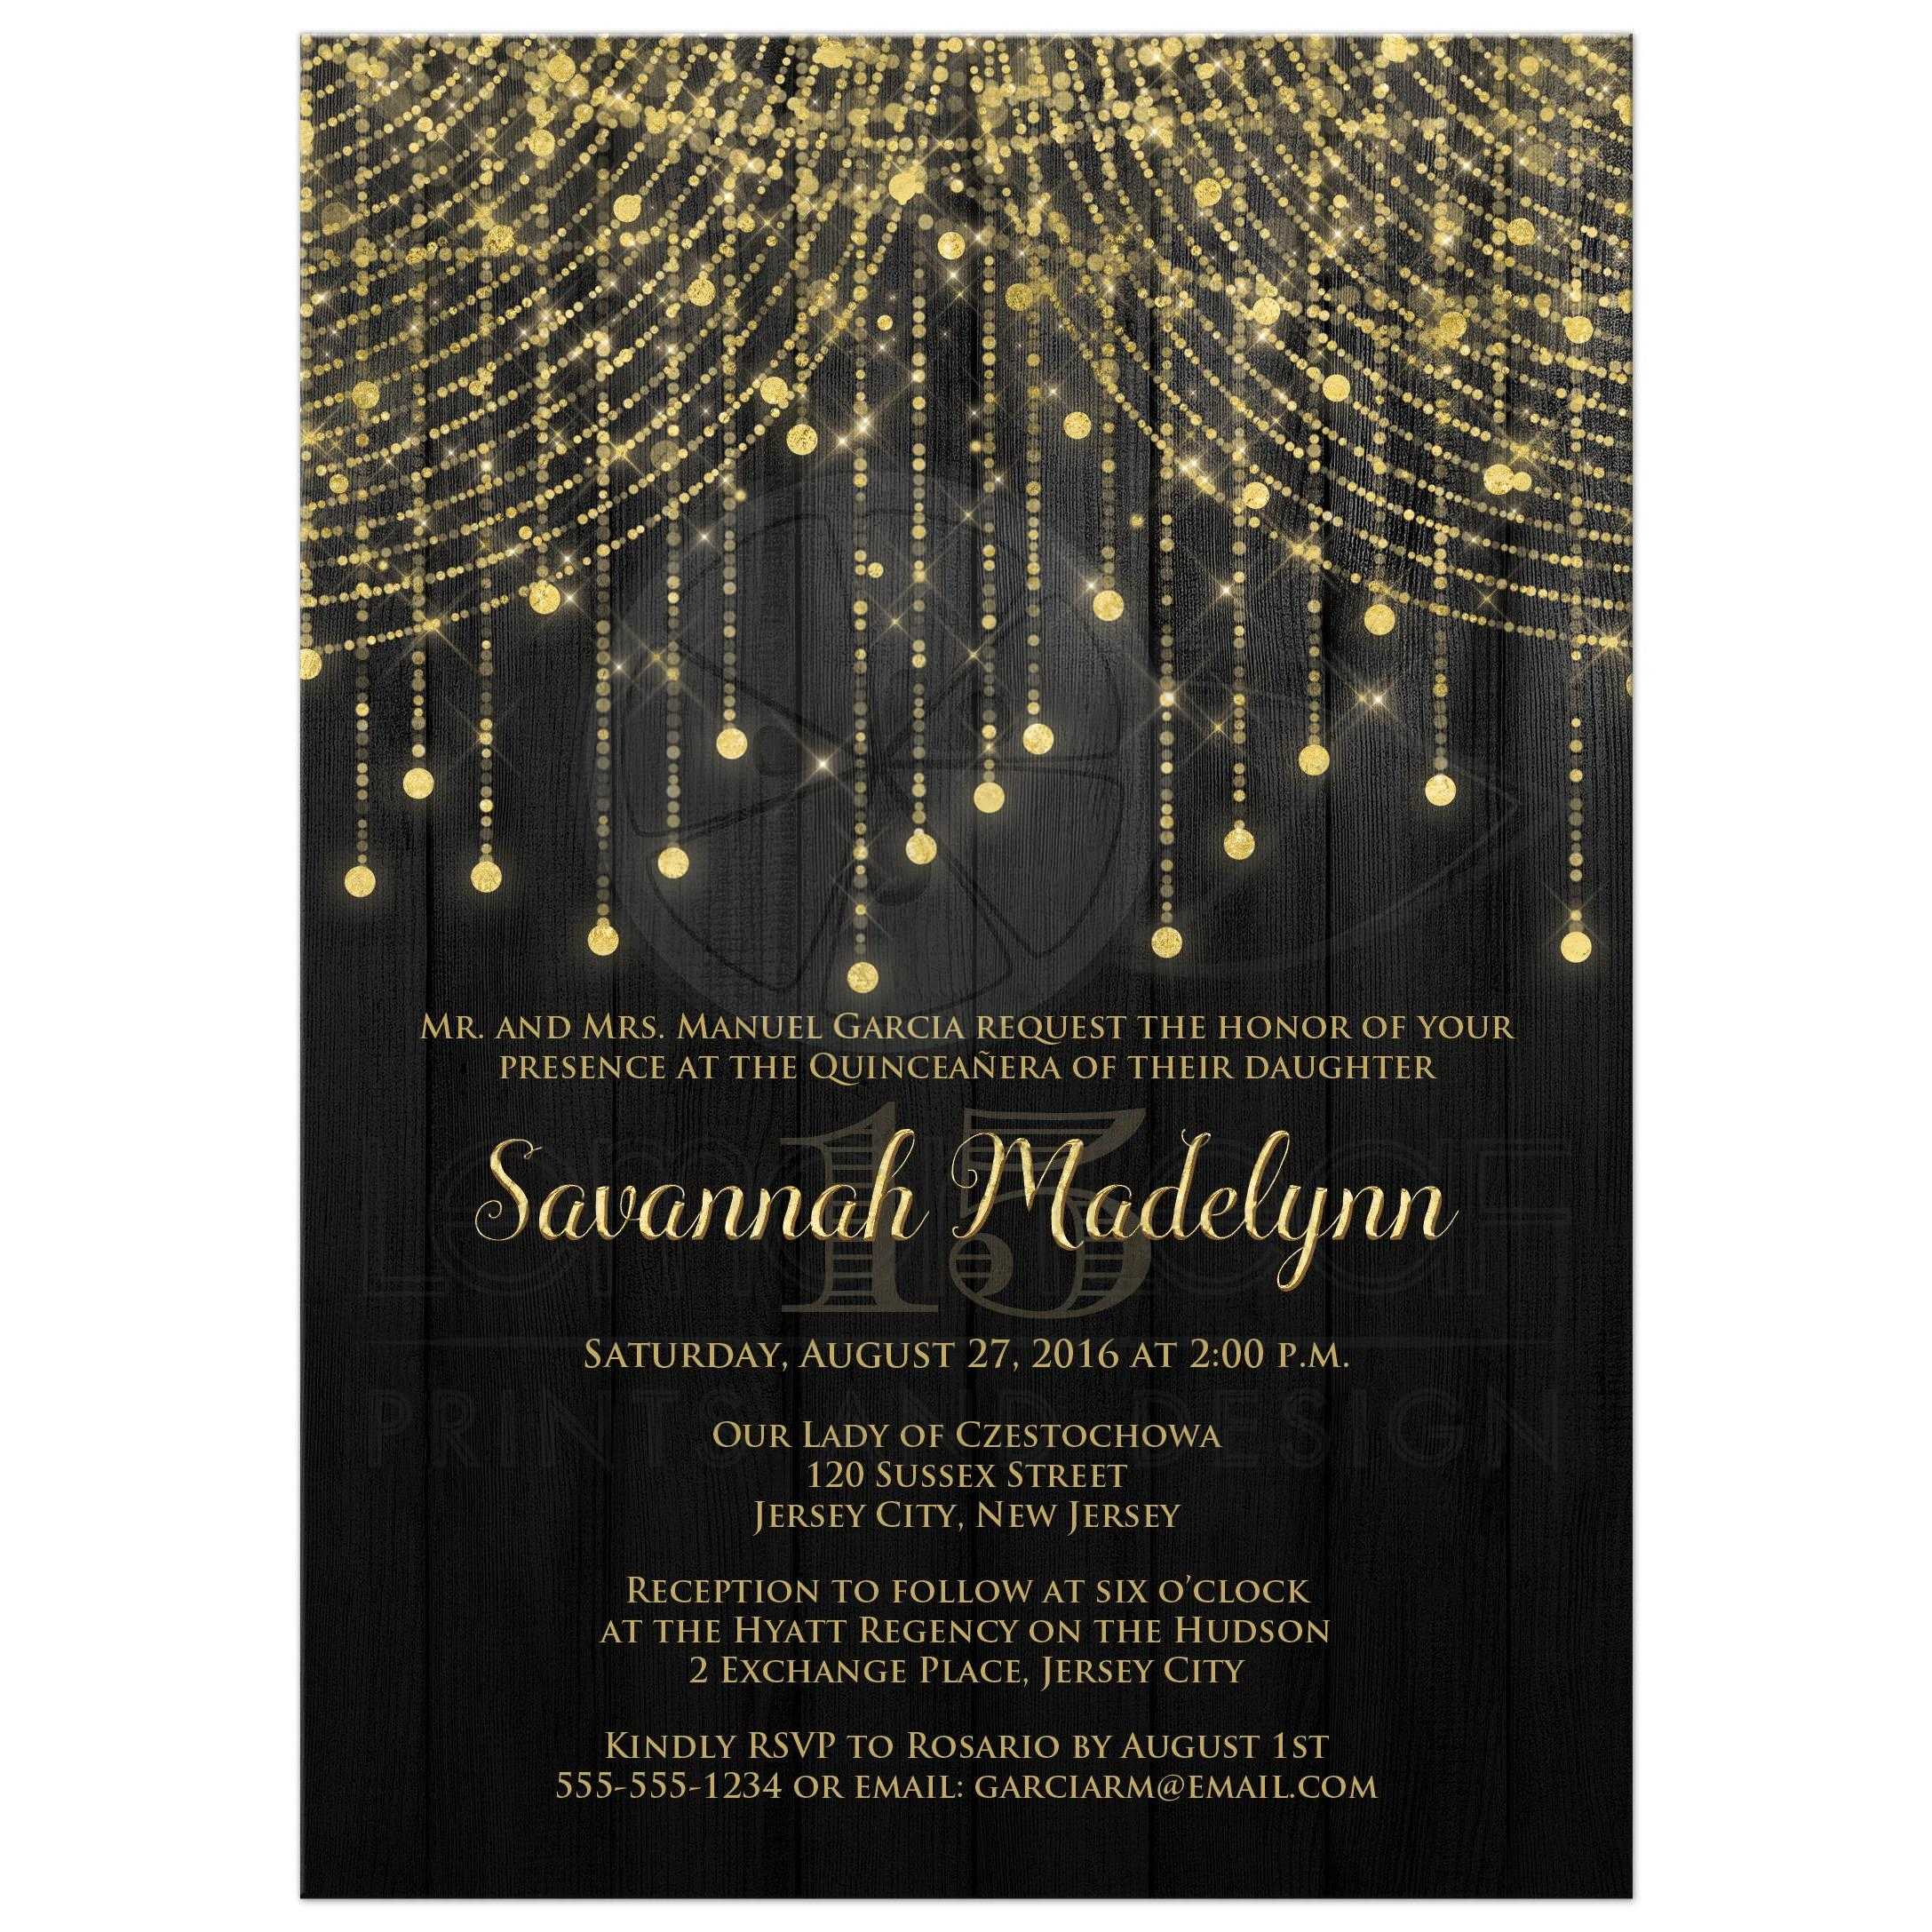 Quinceaera Invitation Black and Gold Twinkle Light Cascades